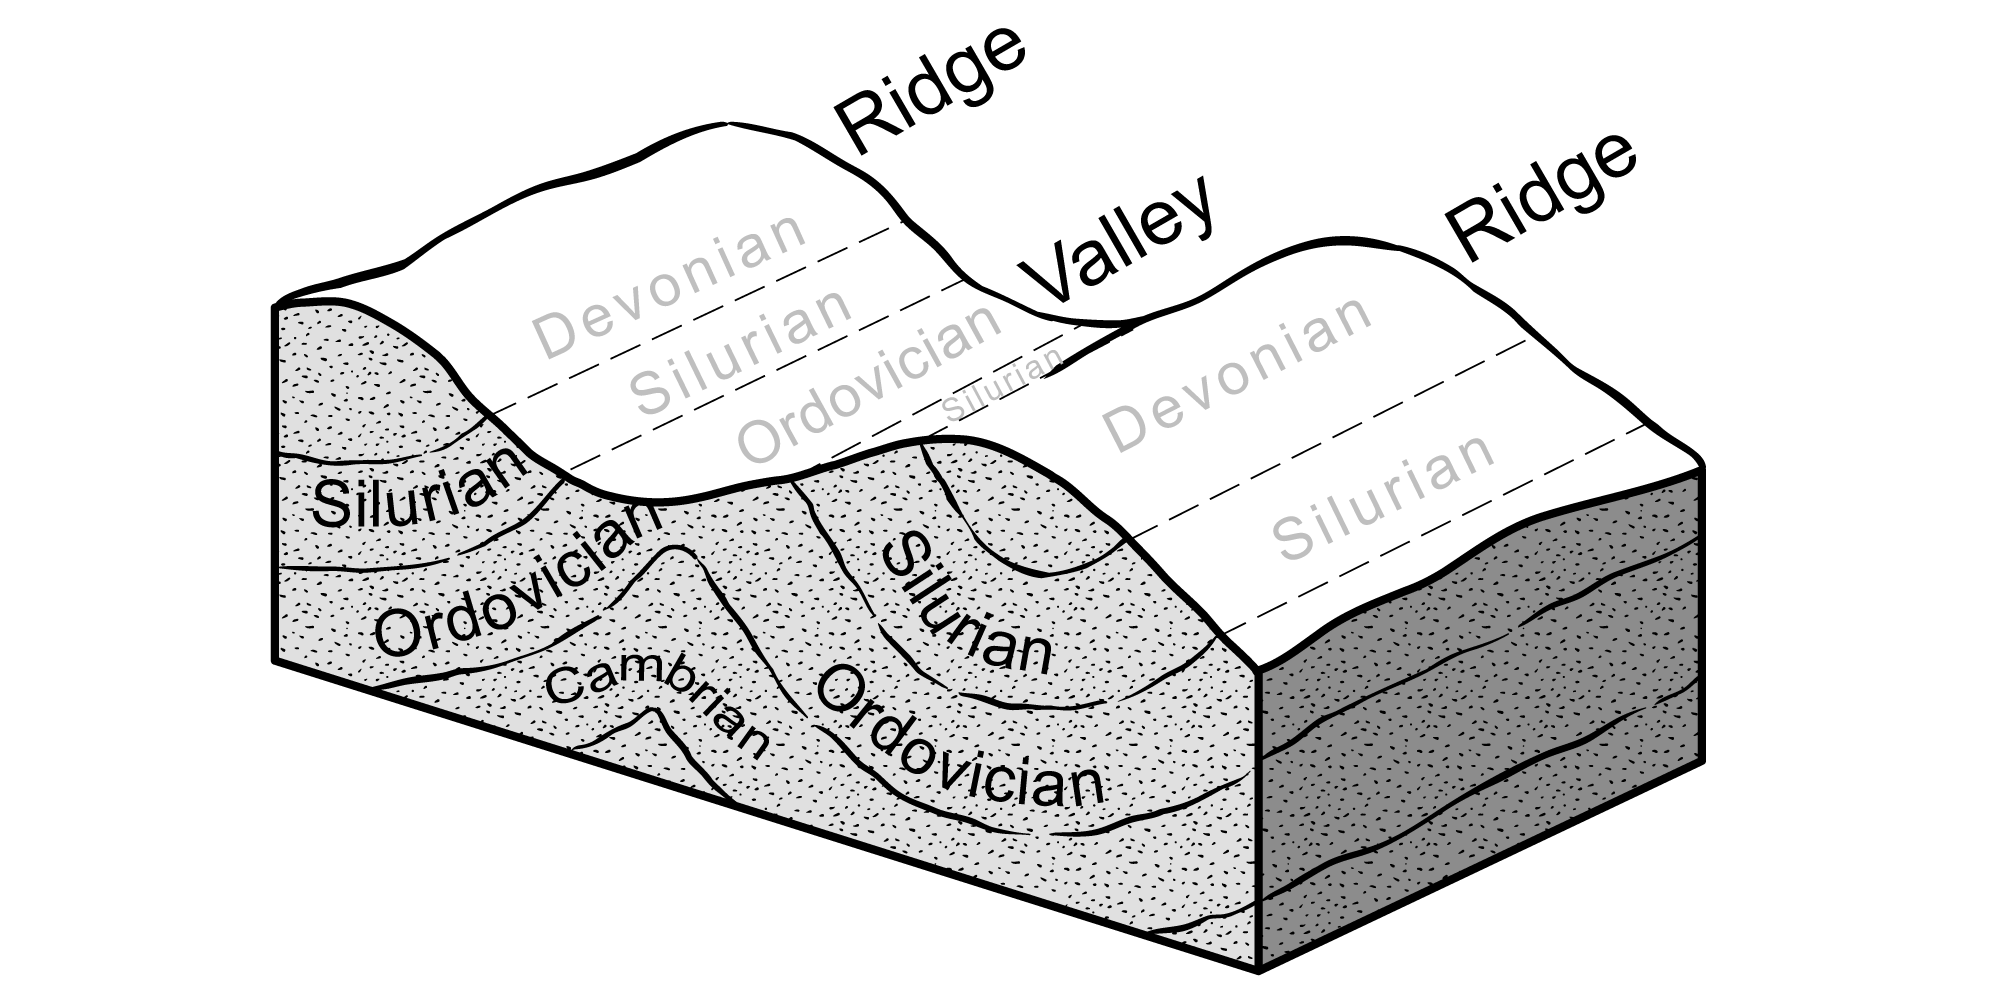 Illustration depicting structural folding in the Paleozoic rocks in the Inland Basin.